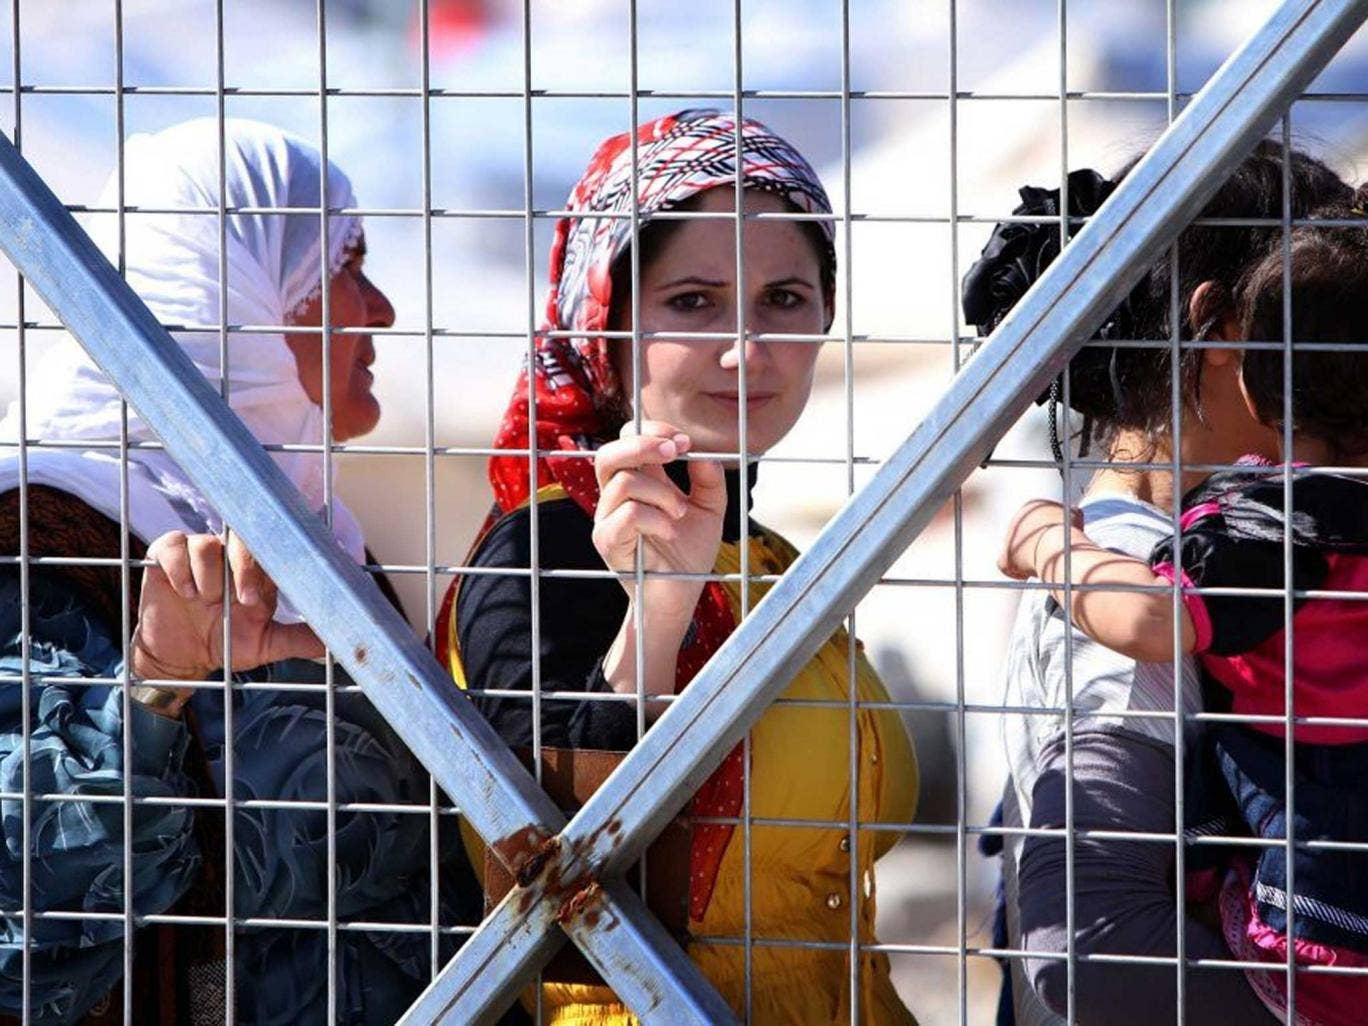 Syrian women and child refugees were allowed to enter the UK in January